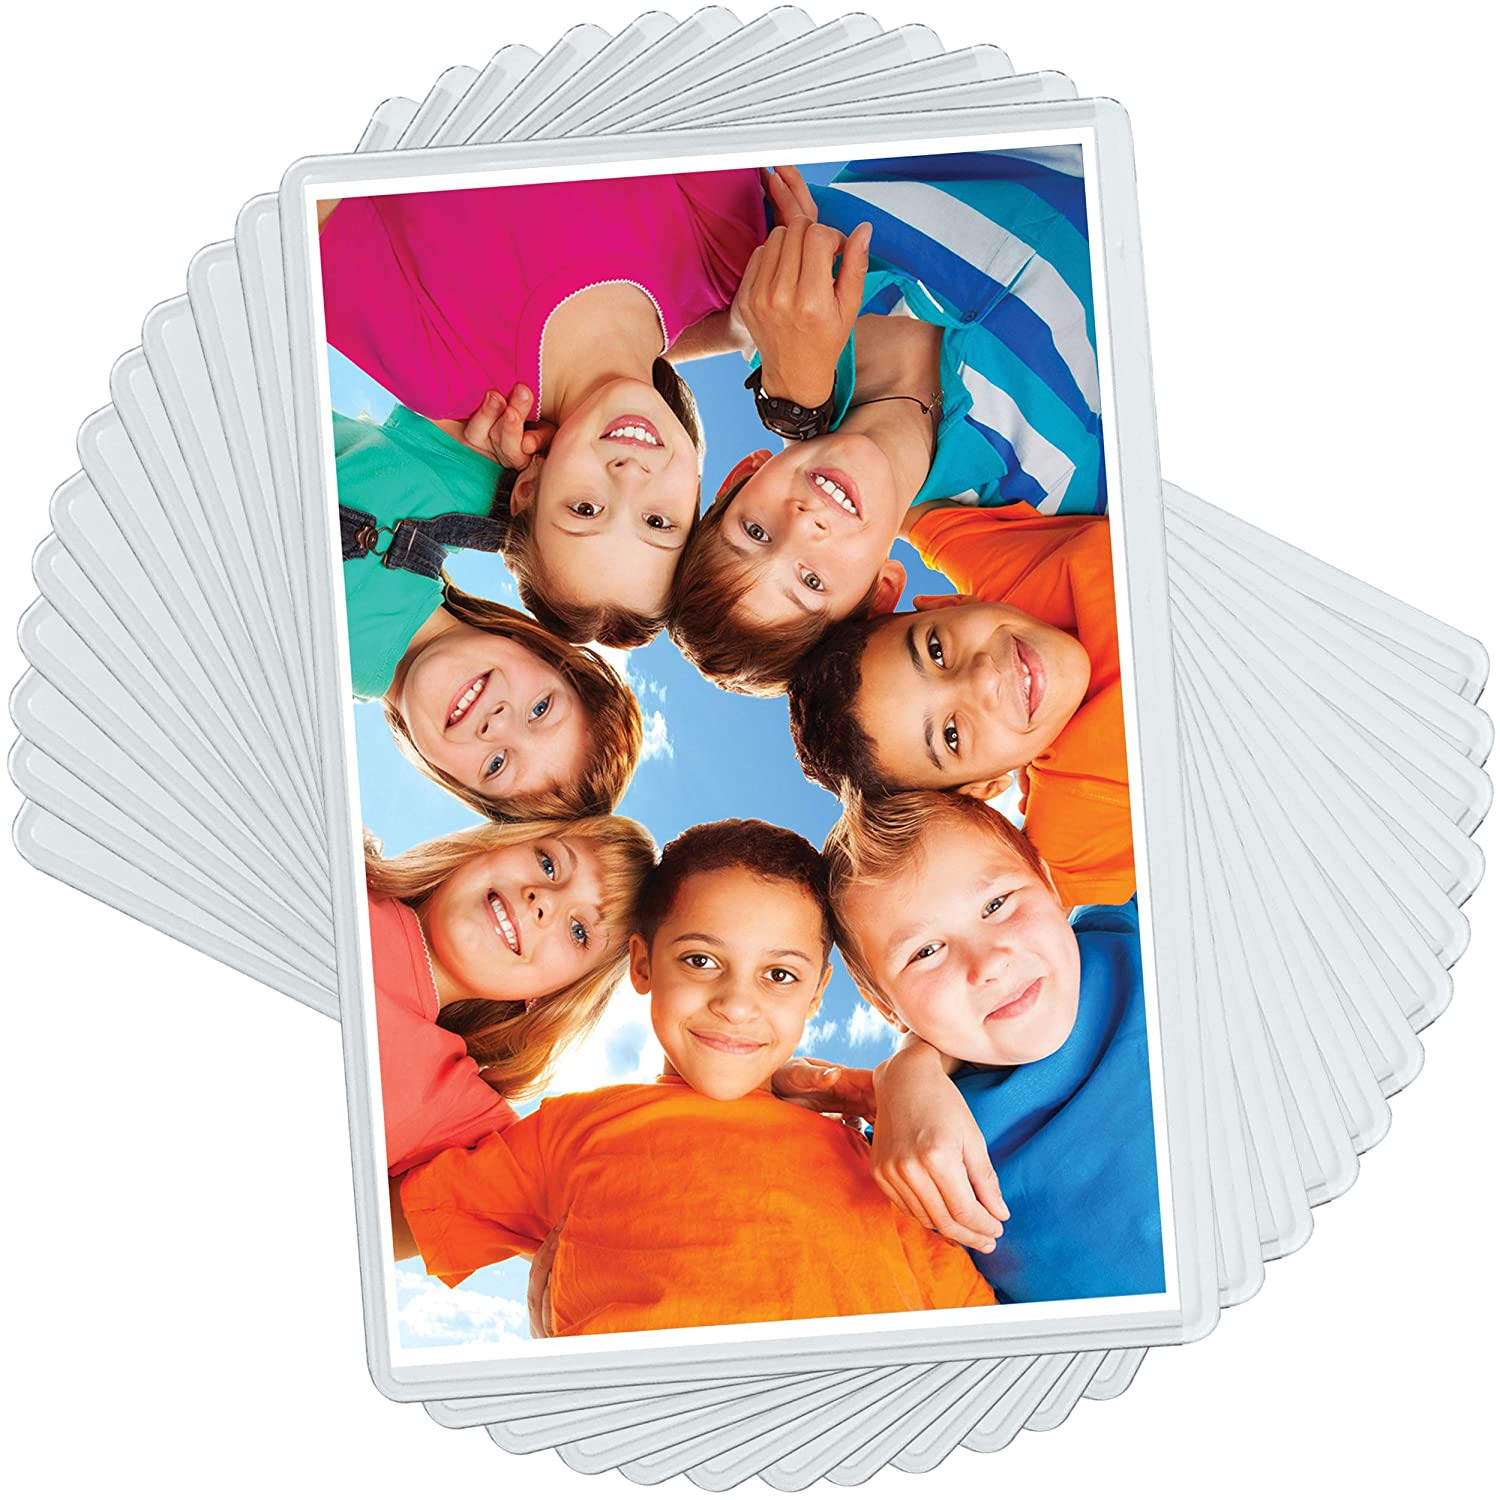 20 Pack 4x6 Magnetic Picture Frames for 4 X 6 Inch Photo Plastic Refrigerator Insert Holder Sleeve Pocket by Freez-a-frame Made in The USA